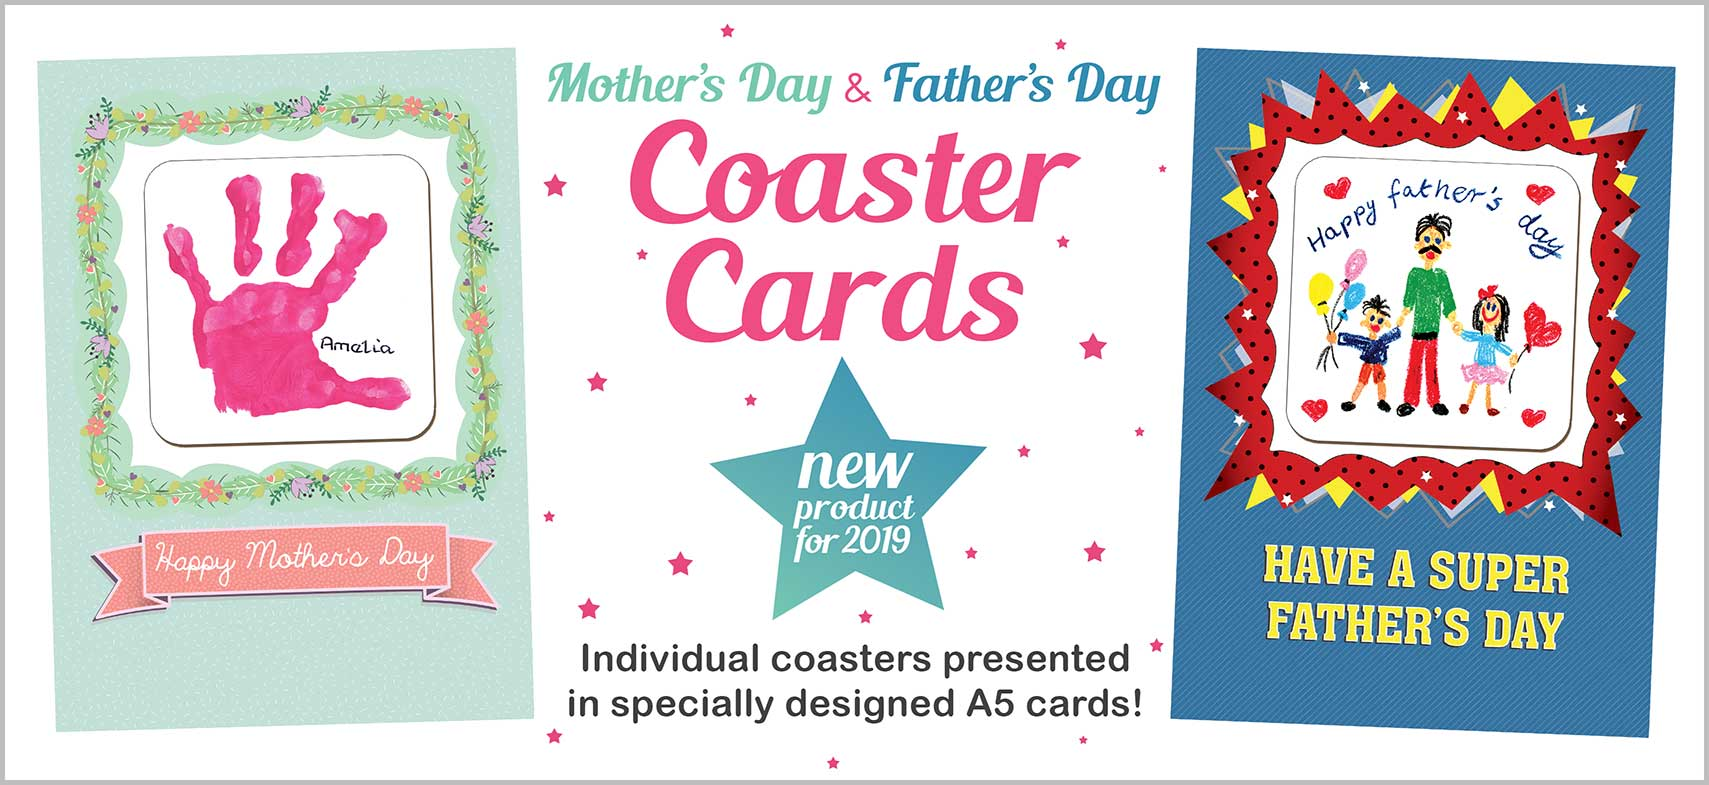 Mother's Day Coaster Cards